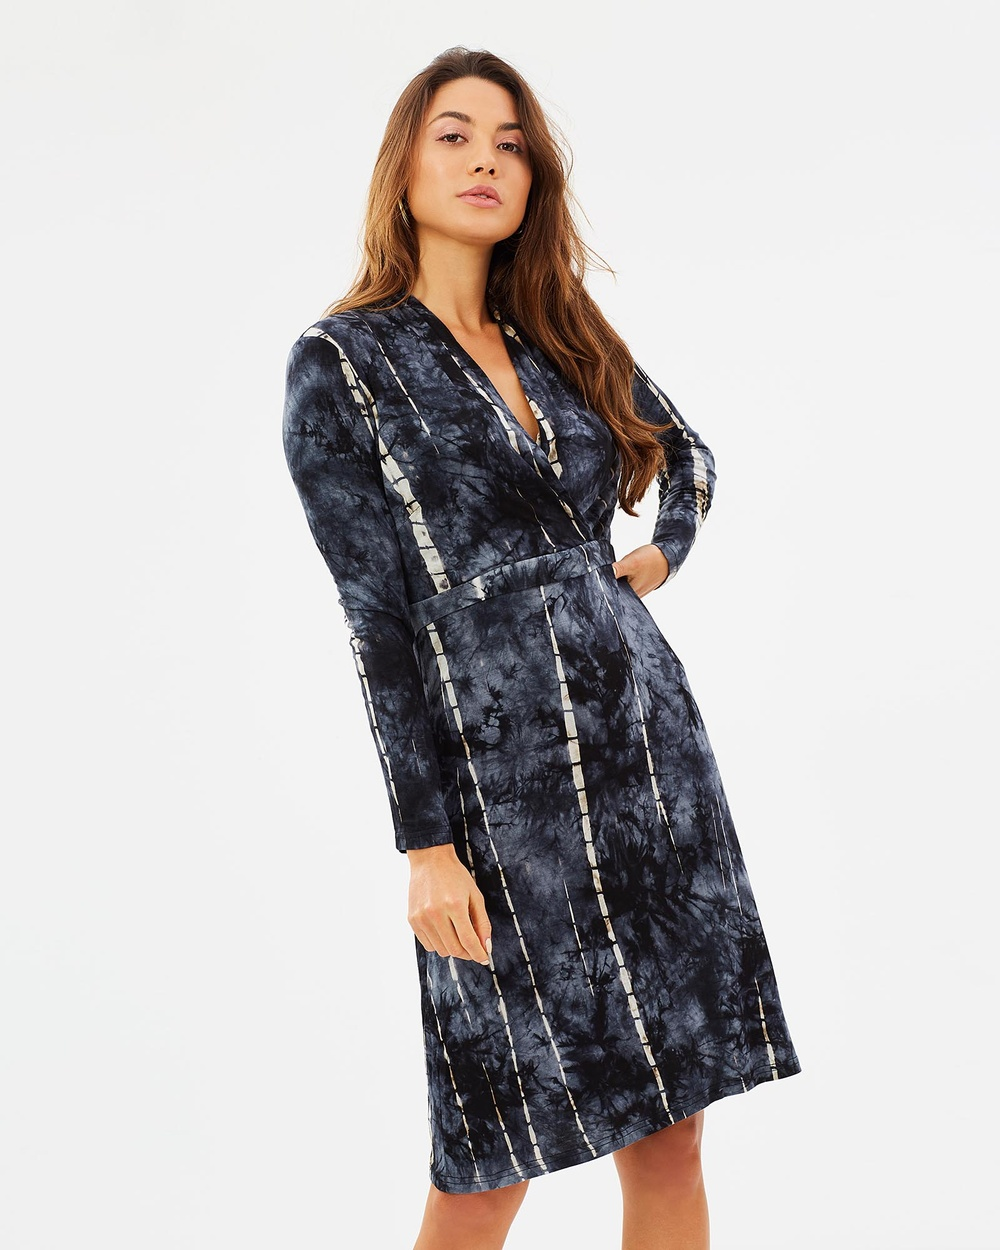 Privilege Smoke Signals Sleeved Wrap Dress Dresses Smokey Smoke Signals Sleeved Wrap Dress